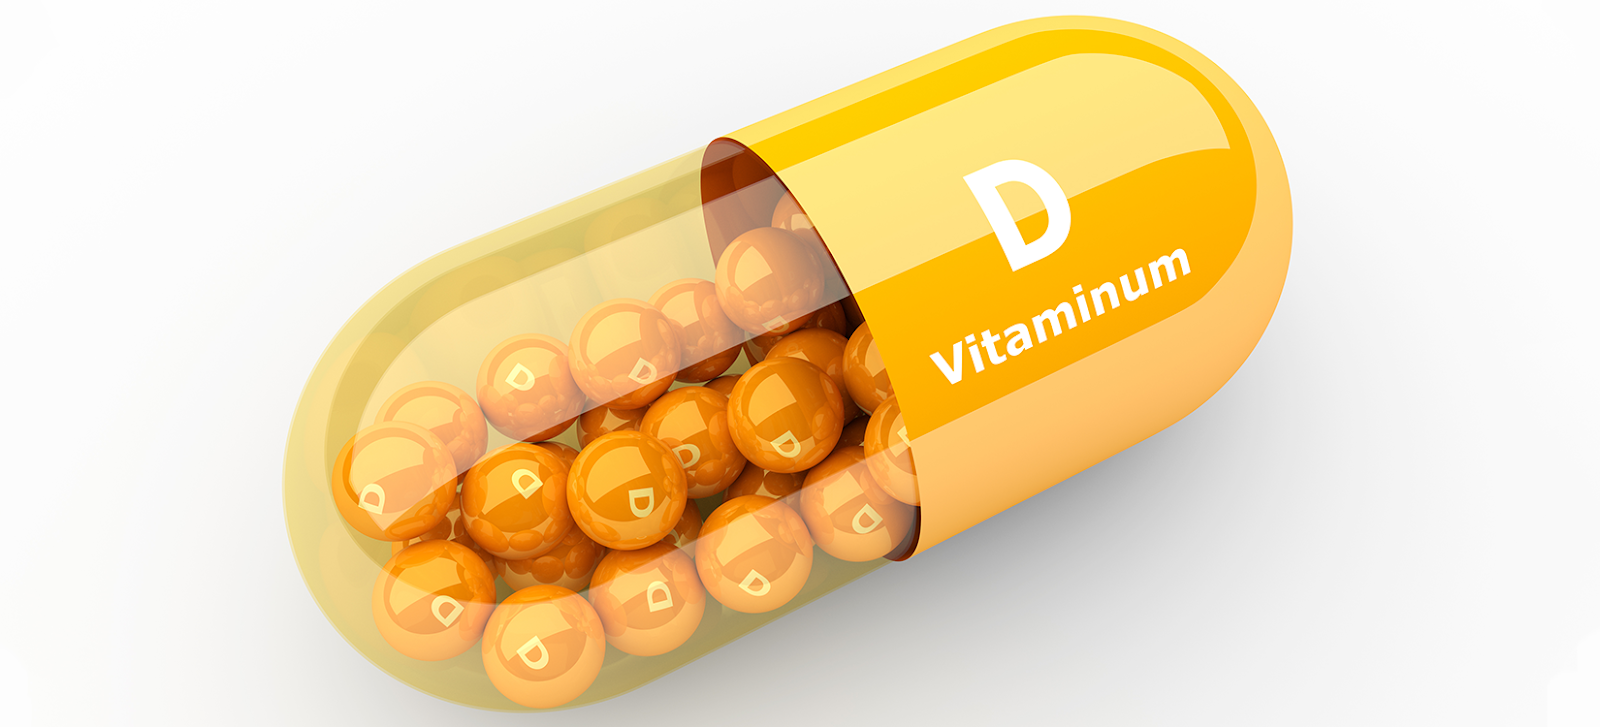 DOES VITAMIN D DEFICIENCY REALLY INCREASE RISK OF DEATH FROM COVID-19?....